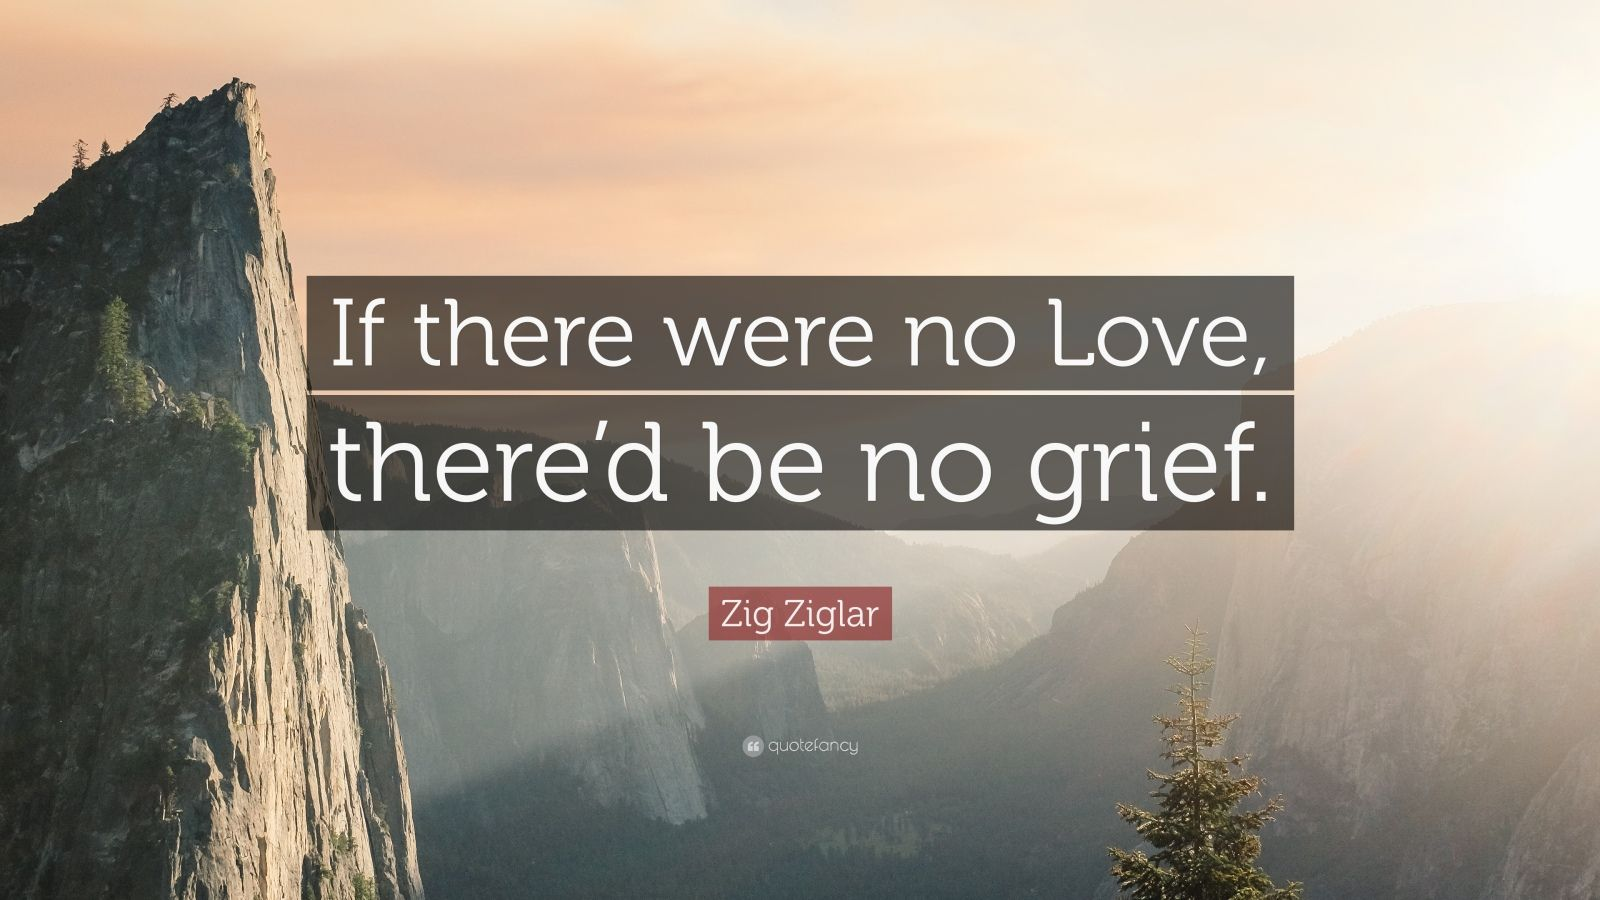 """Zig Ziglar Quote: """"If there were no Love, there'd be no grief."""""""